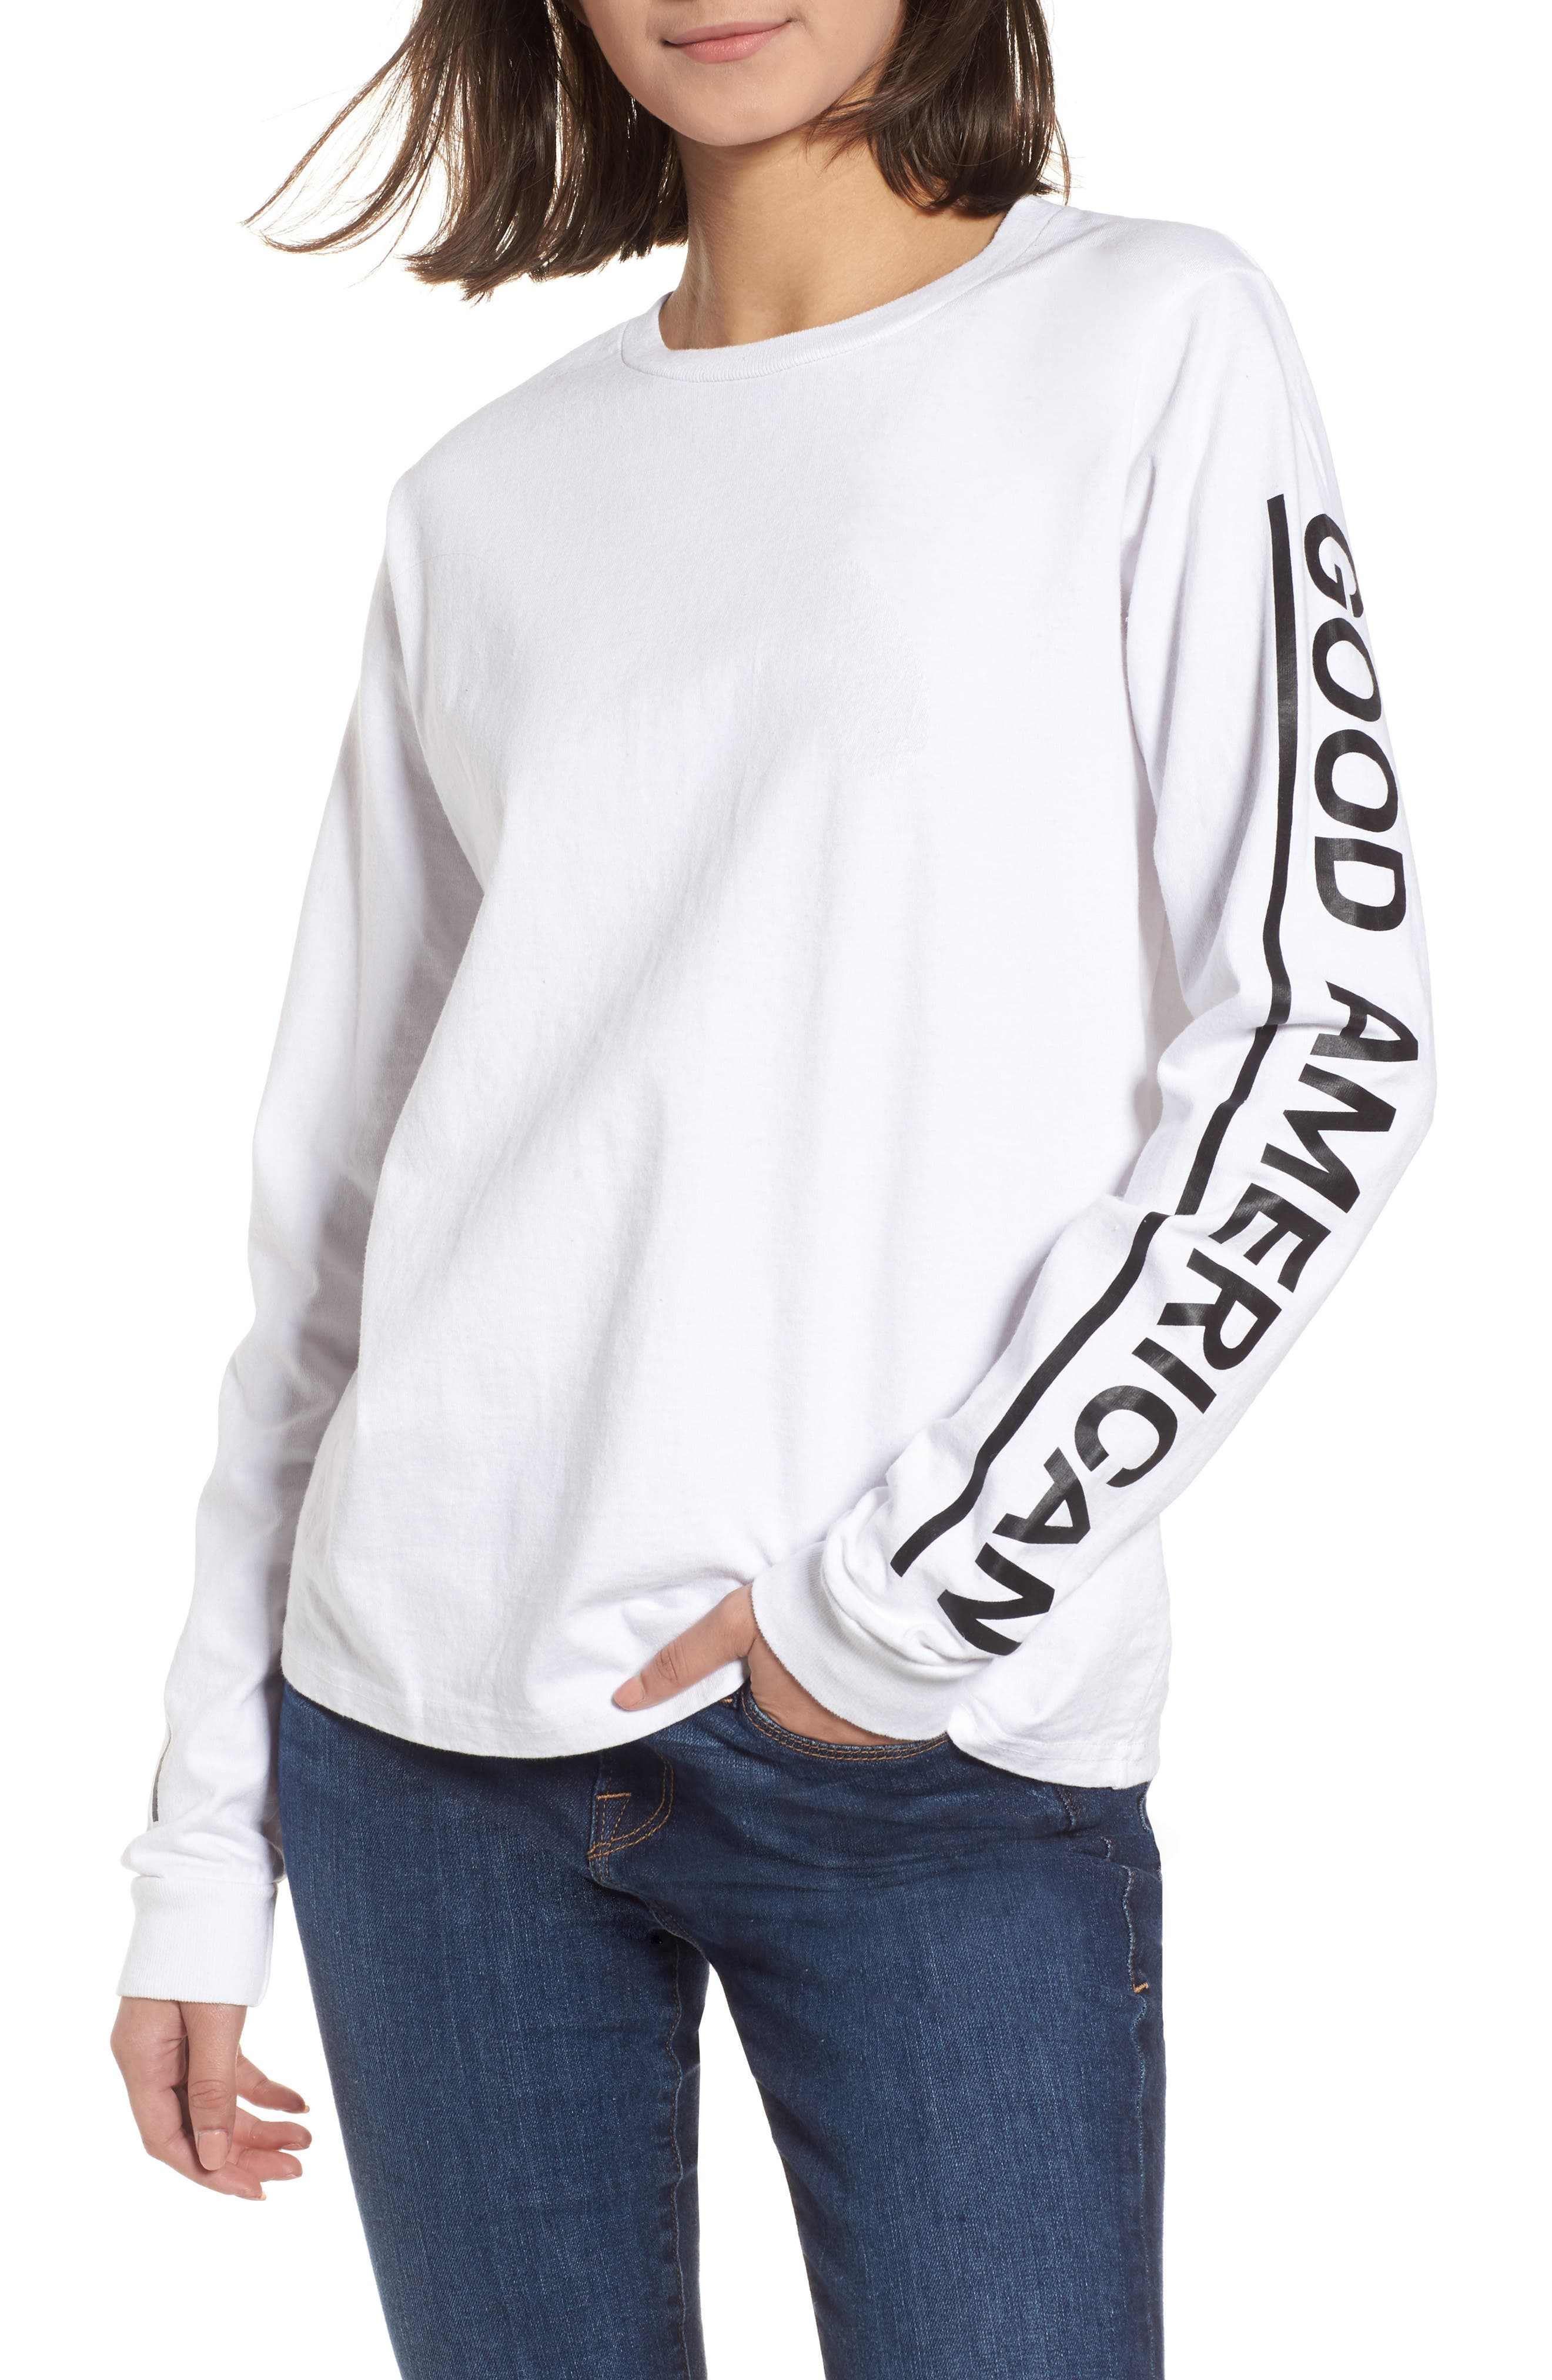 Goodies Long Sleeve Graphic Tee,                         Main,                         color,